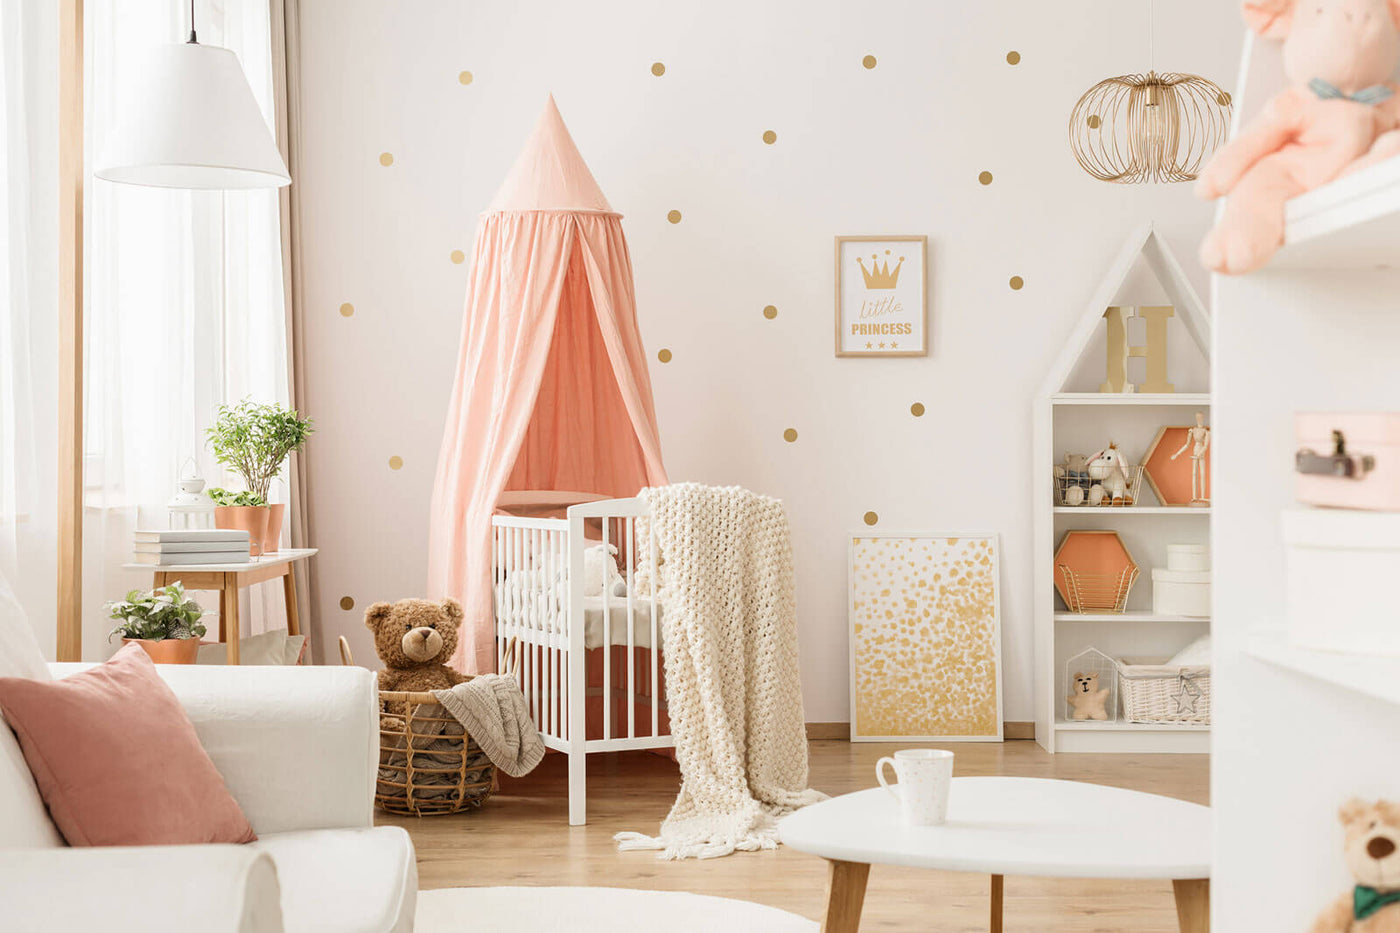 Rockabye Baby: How to Choose the Best Wallpaper for a Nursery